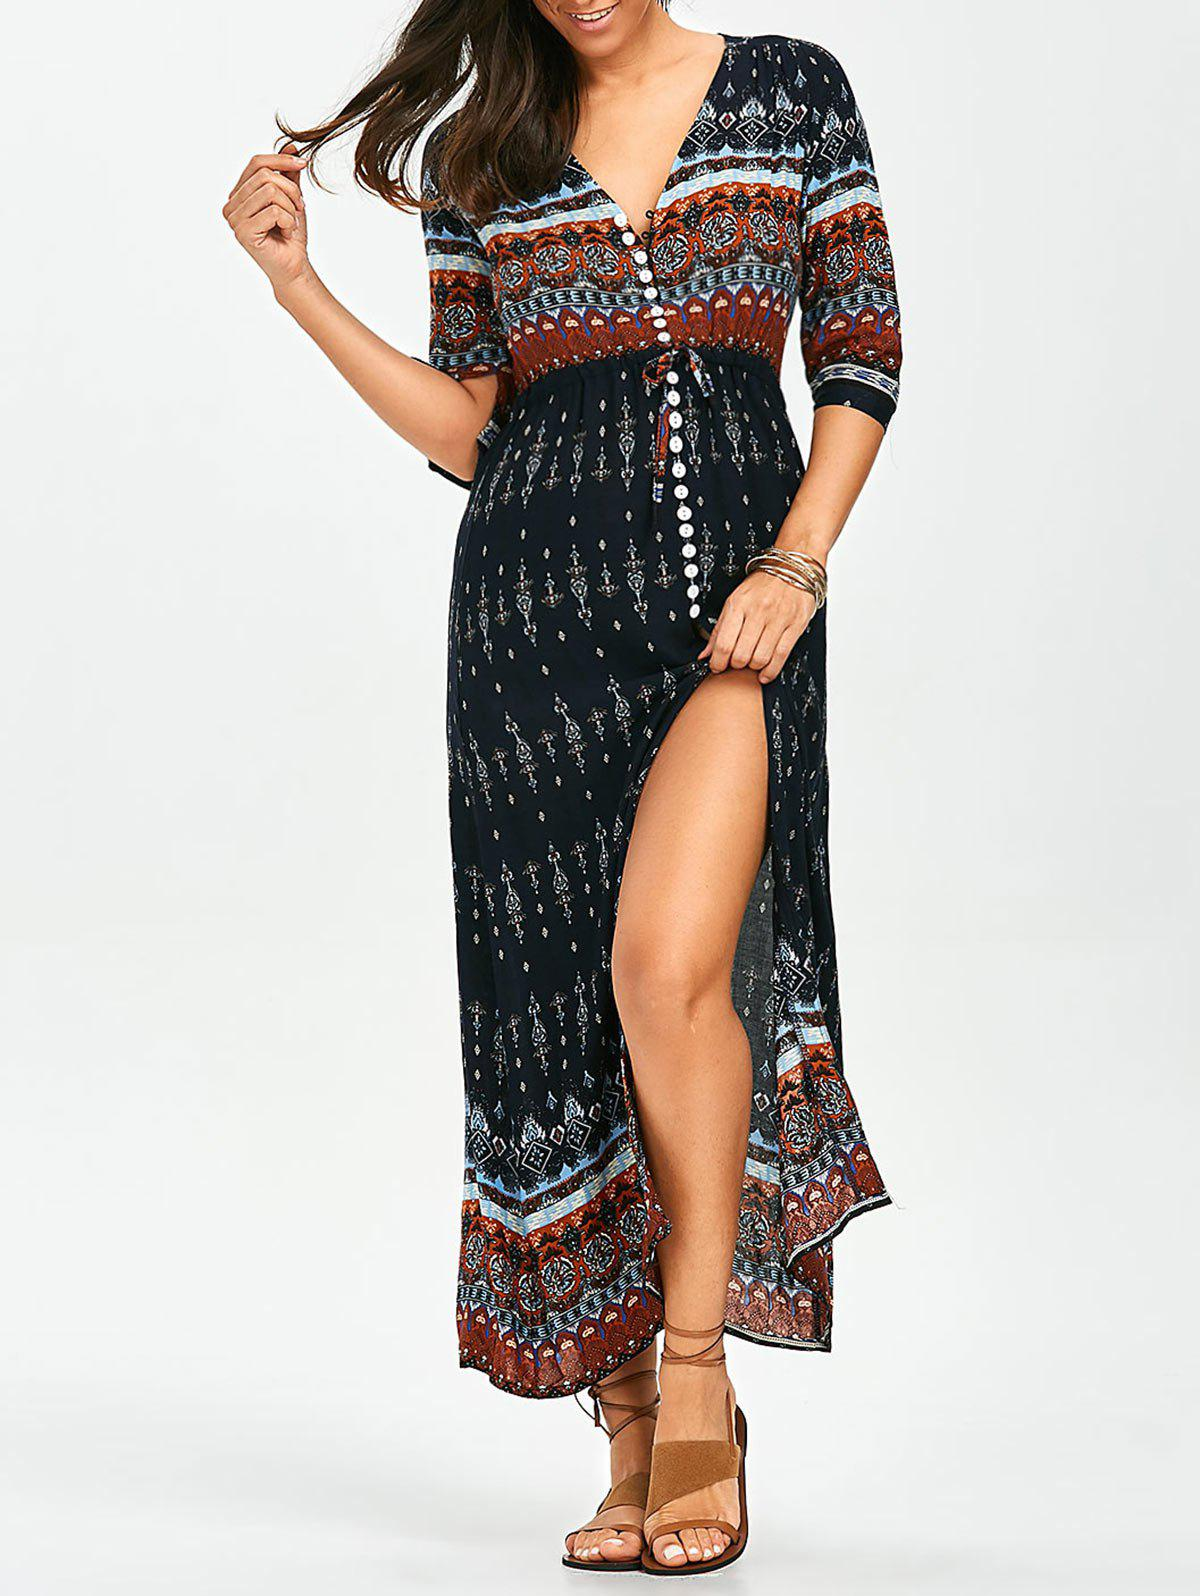 Bohemian Tribal Imprimer Split Button Up Dress - multicolore M